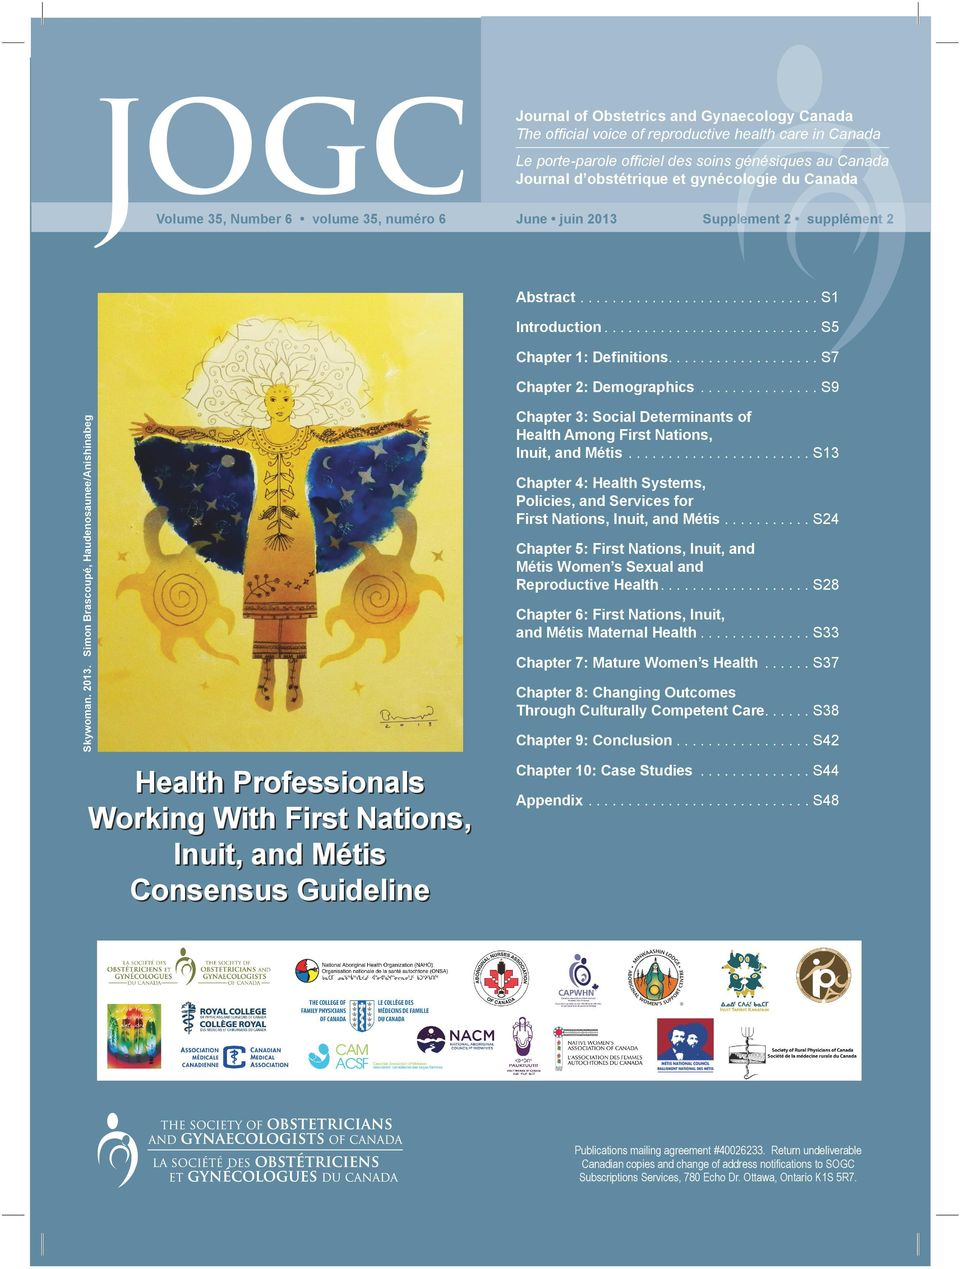 Simon Brascoupé, Haudenosaunee/Anishinabeg Health Professionals Working With First Nations, Inuit, and Métis Consensus Guideline Chapter 3: Social Determinants of Health Among First Nations, Inuit,